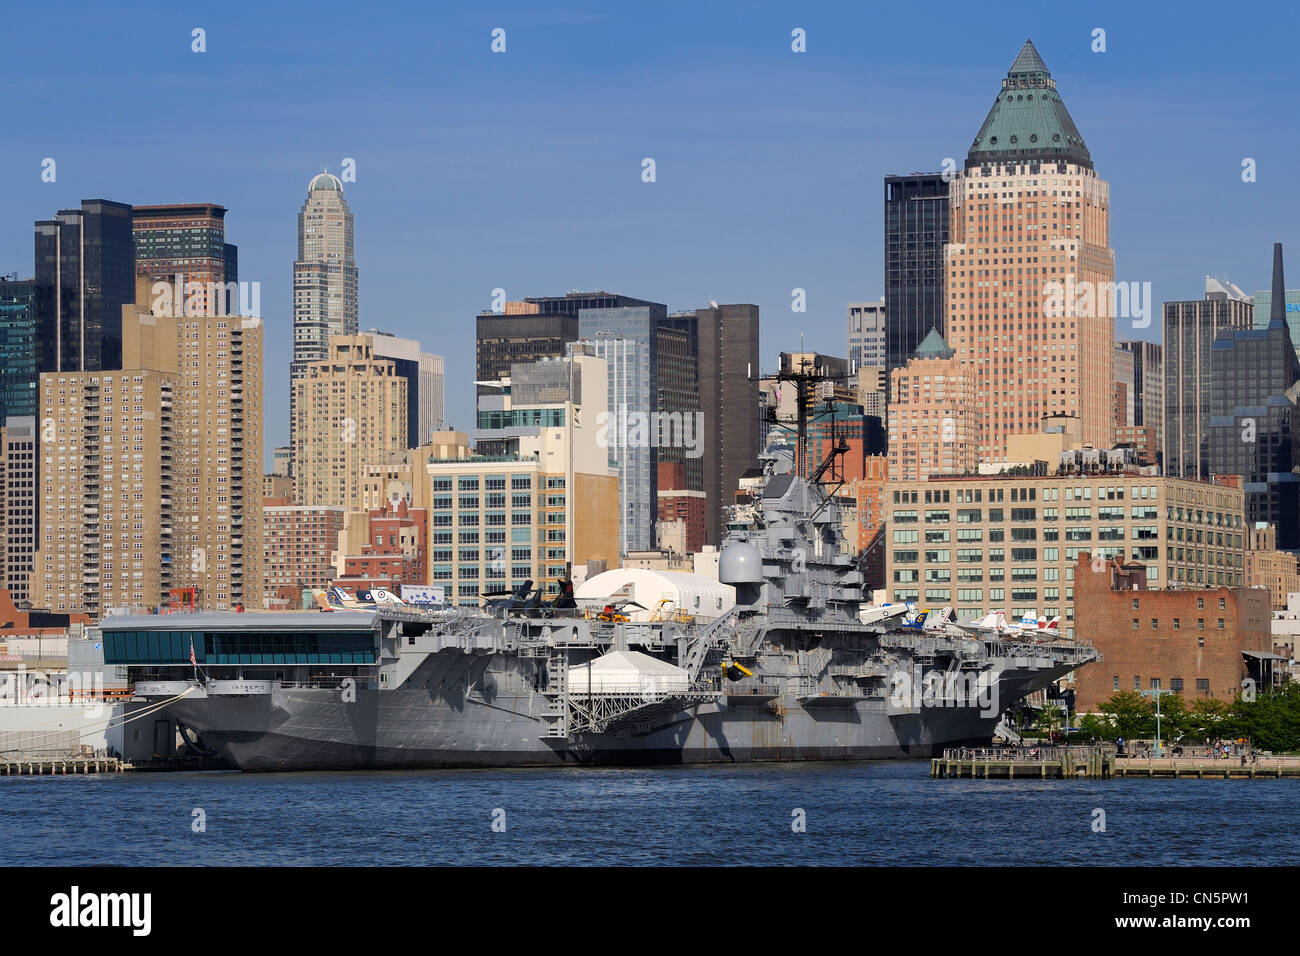 intrepid museum stock photos  u0026 intrepid museum stock